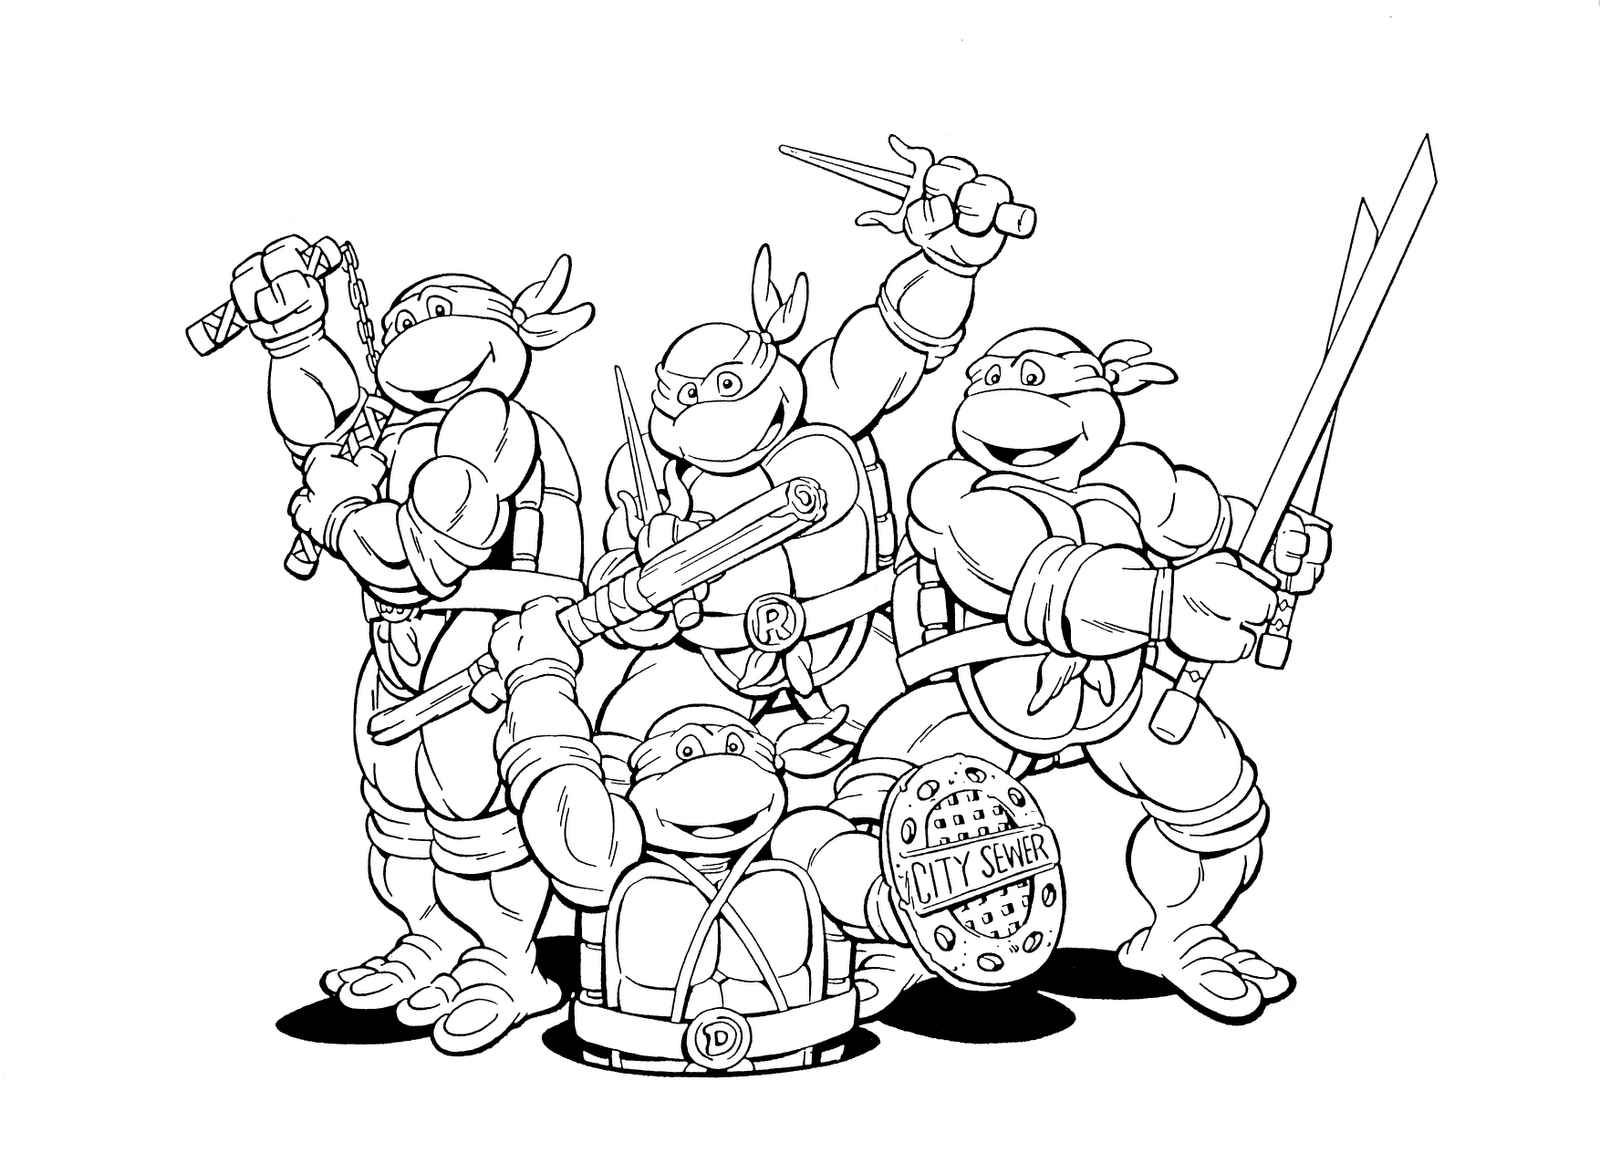 Teenage Mutant Ninja Turtles Coloring Pages Printable | OT stuff ...